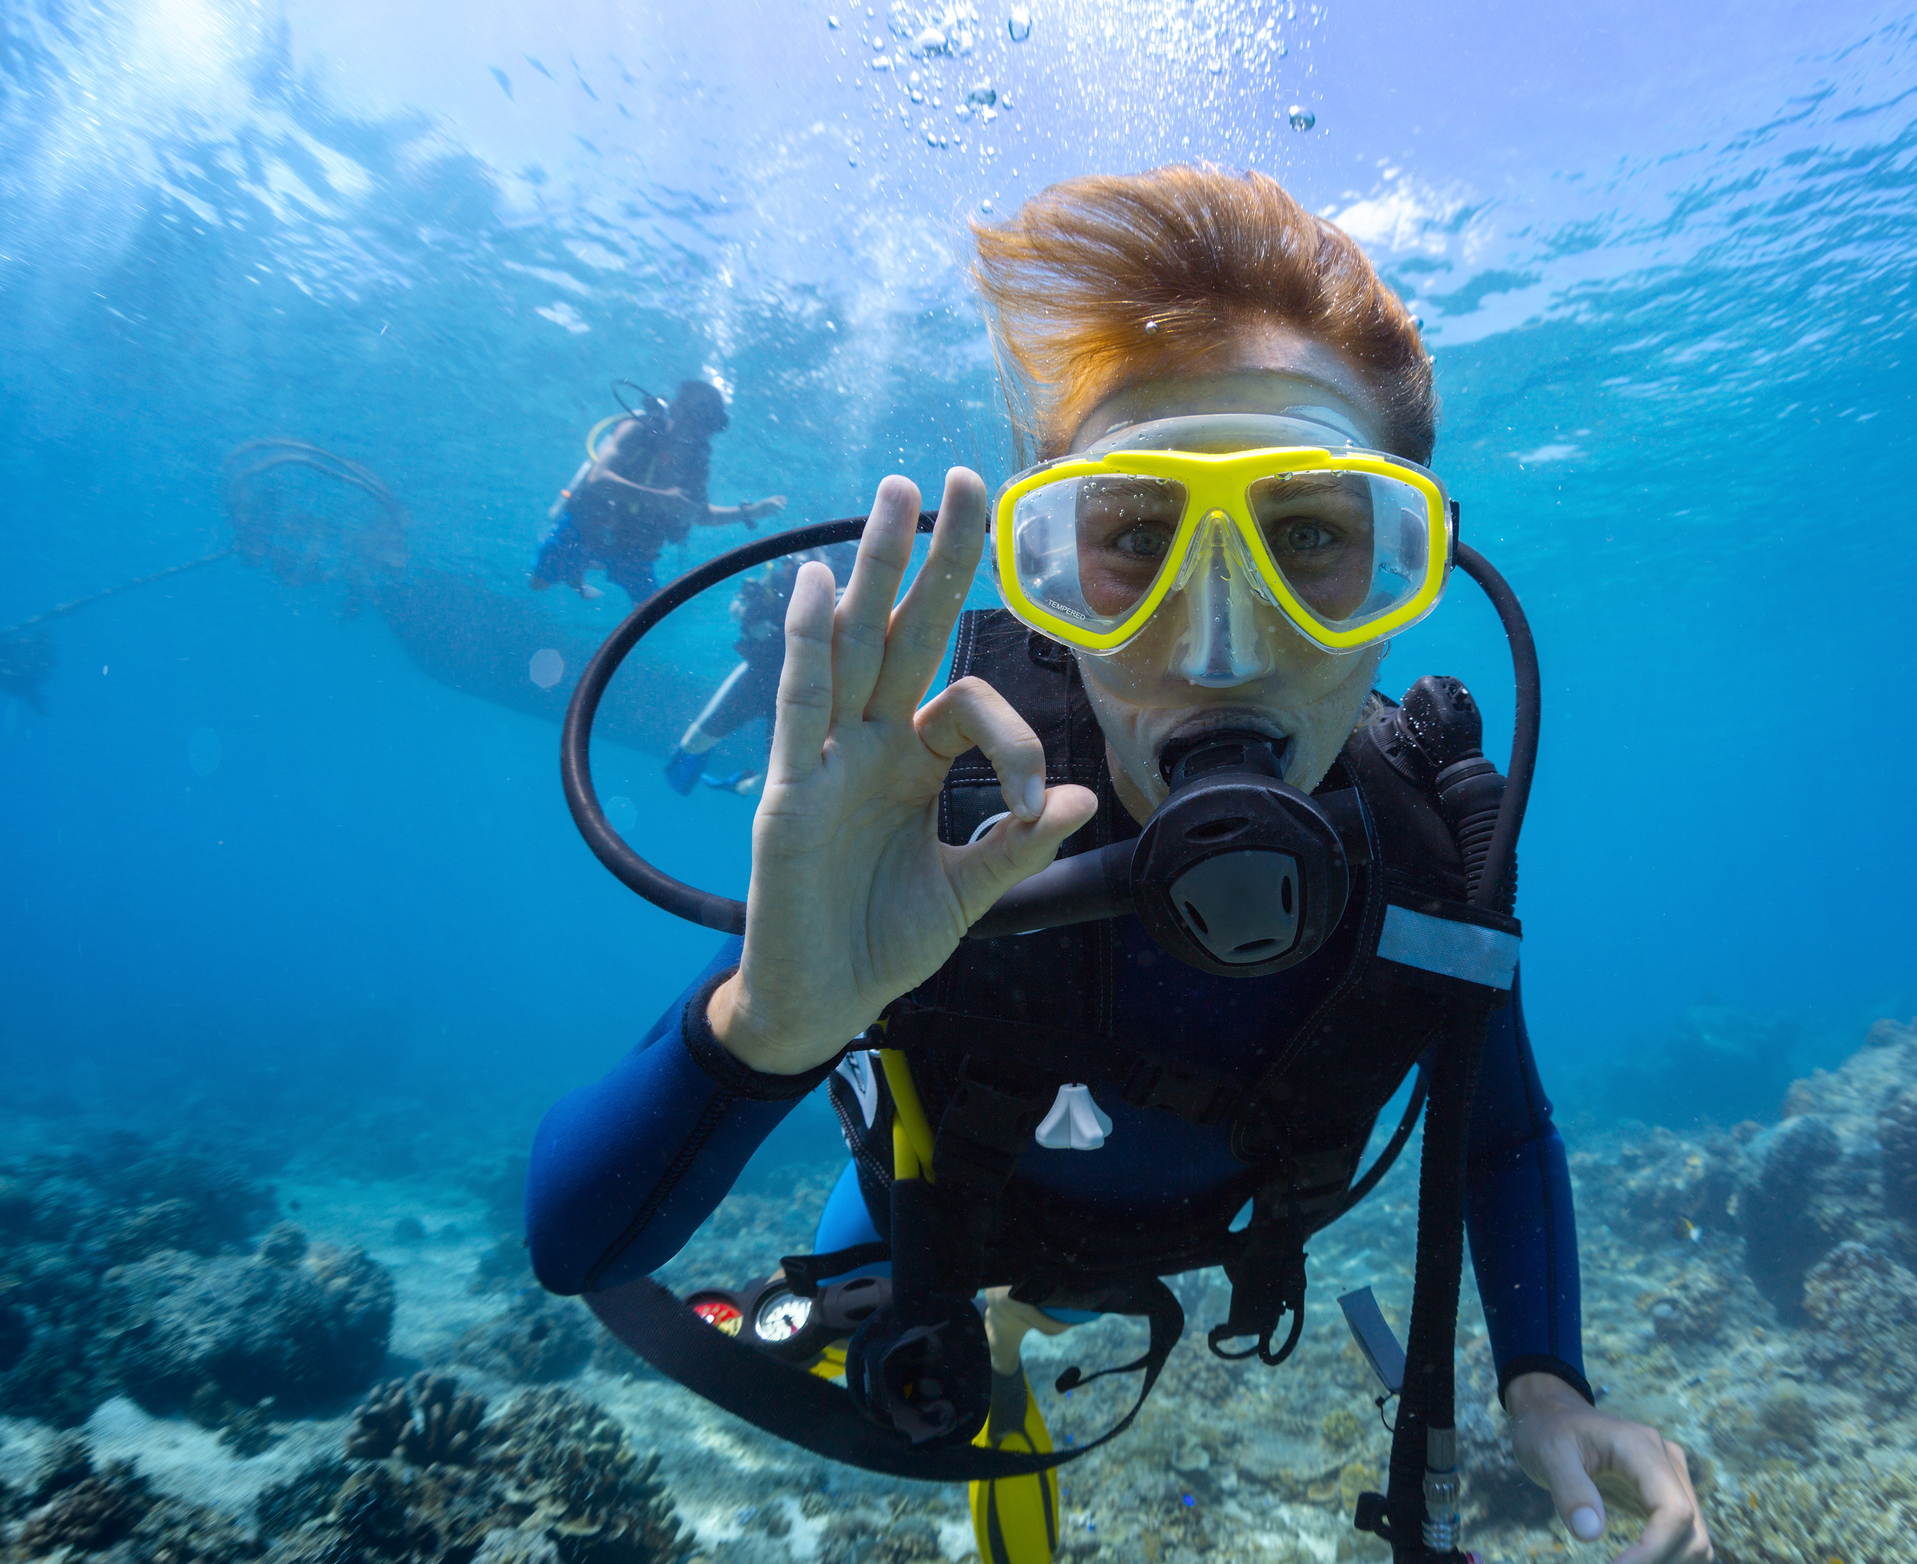 Scuba Diver underwater giving the OK sign